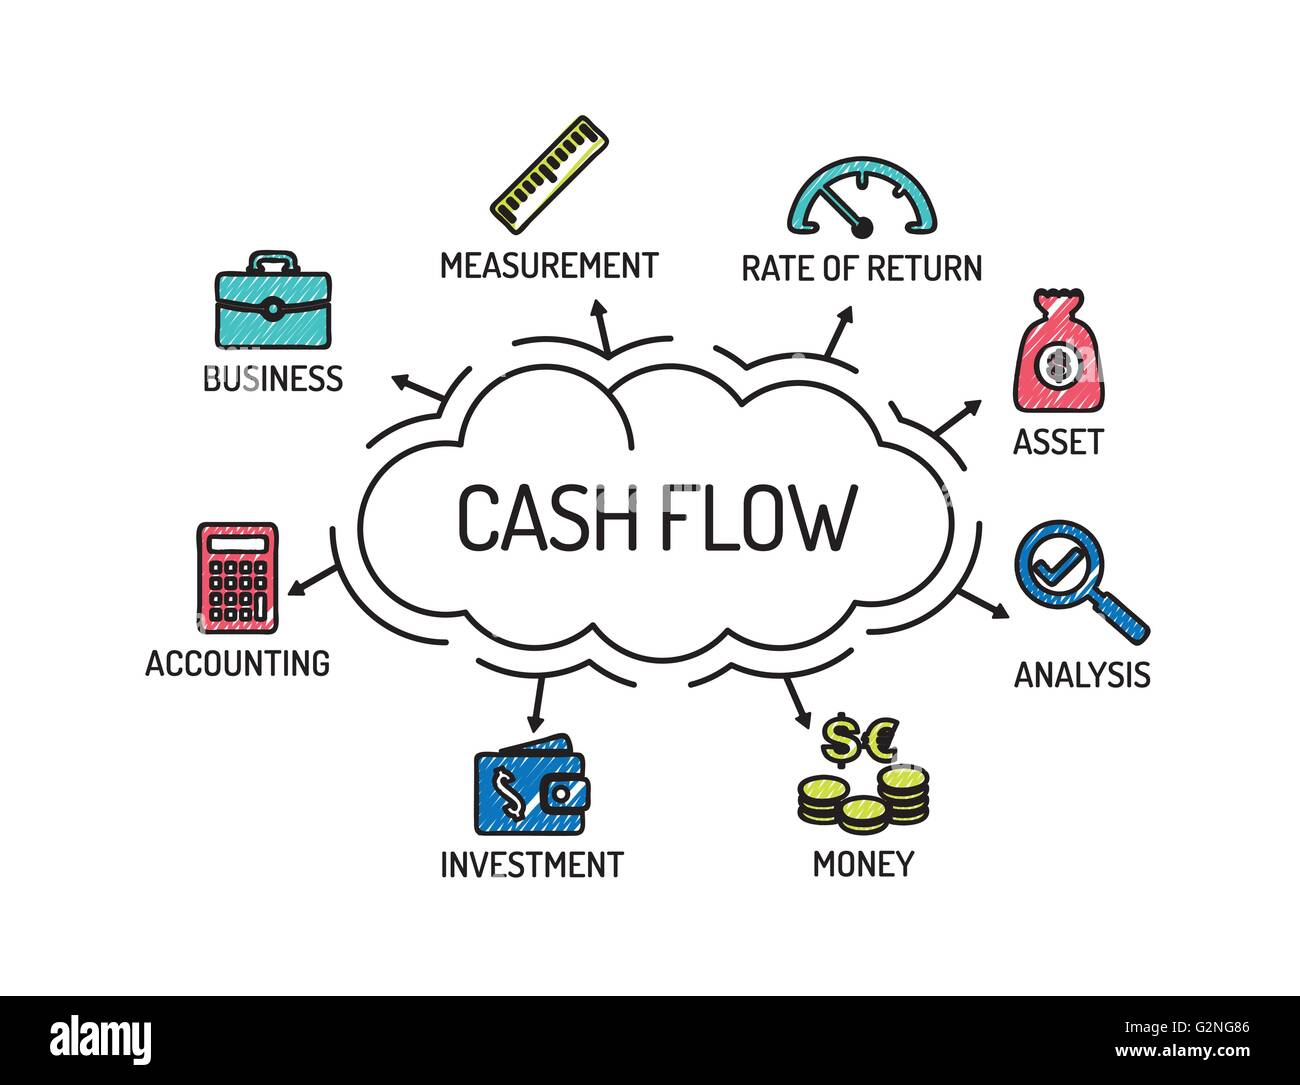 cash flow chart with keywords and icons sketch stock vector art